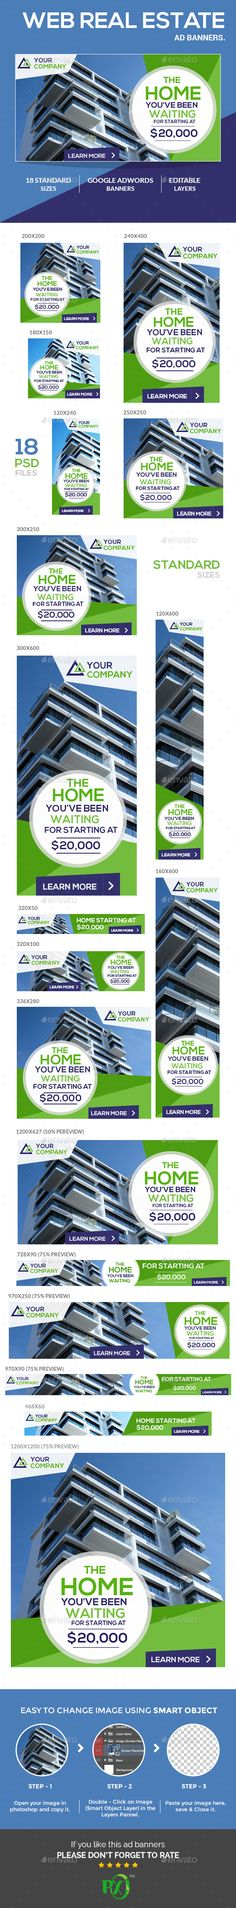 Web Real Estate Ad Banners. — Photoshop PSD #adword #sales • Available here → https://graphicriver.net/item/web-real-estate-ad-banners/16440338?ref=pxcr